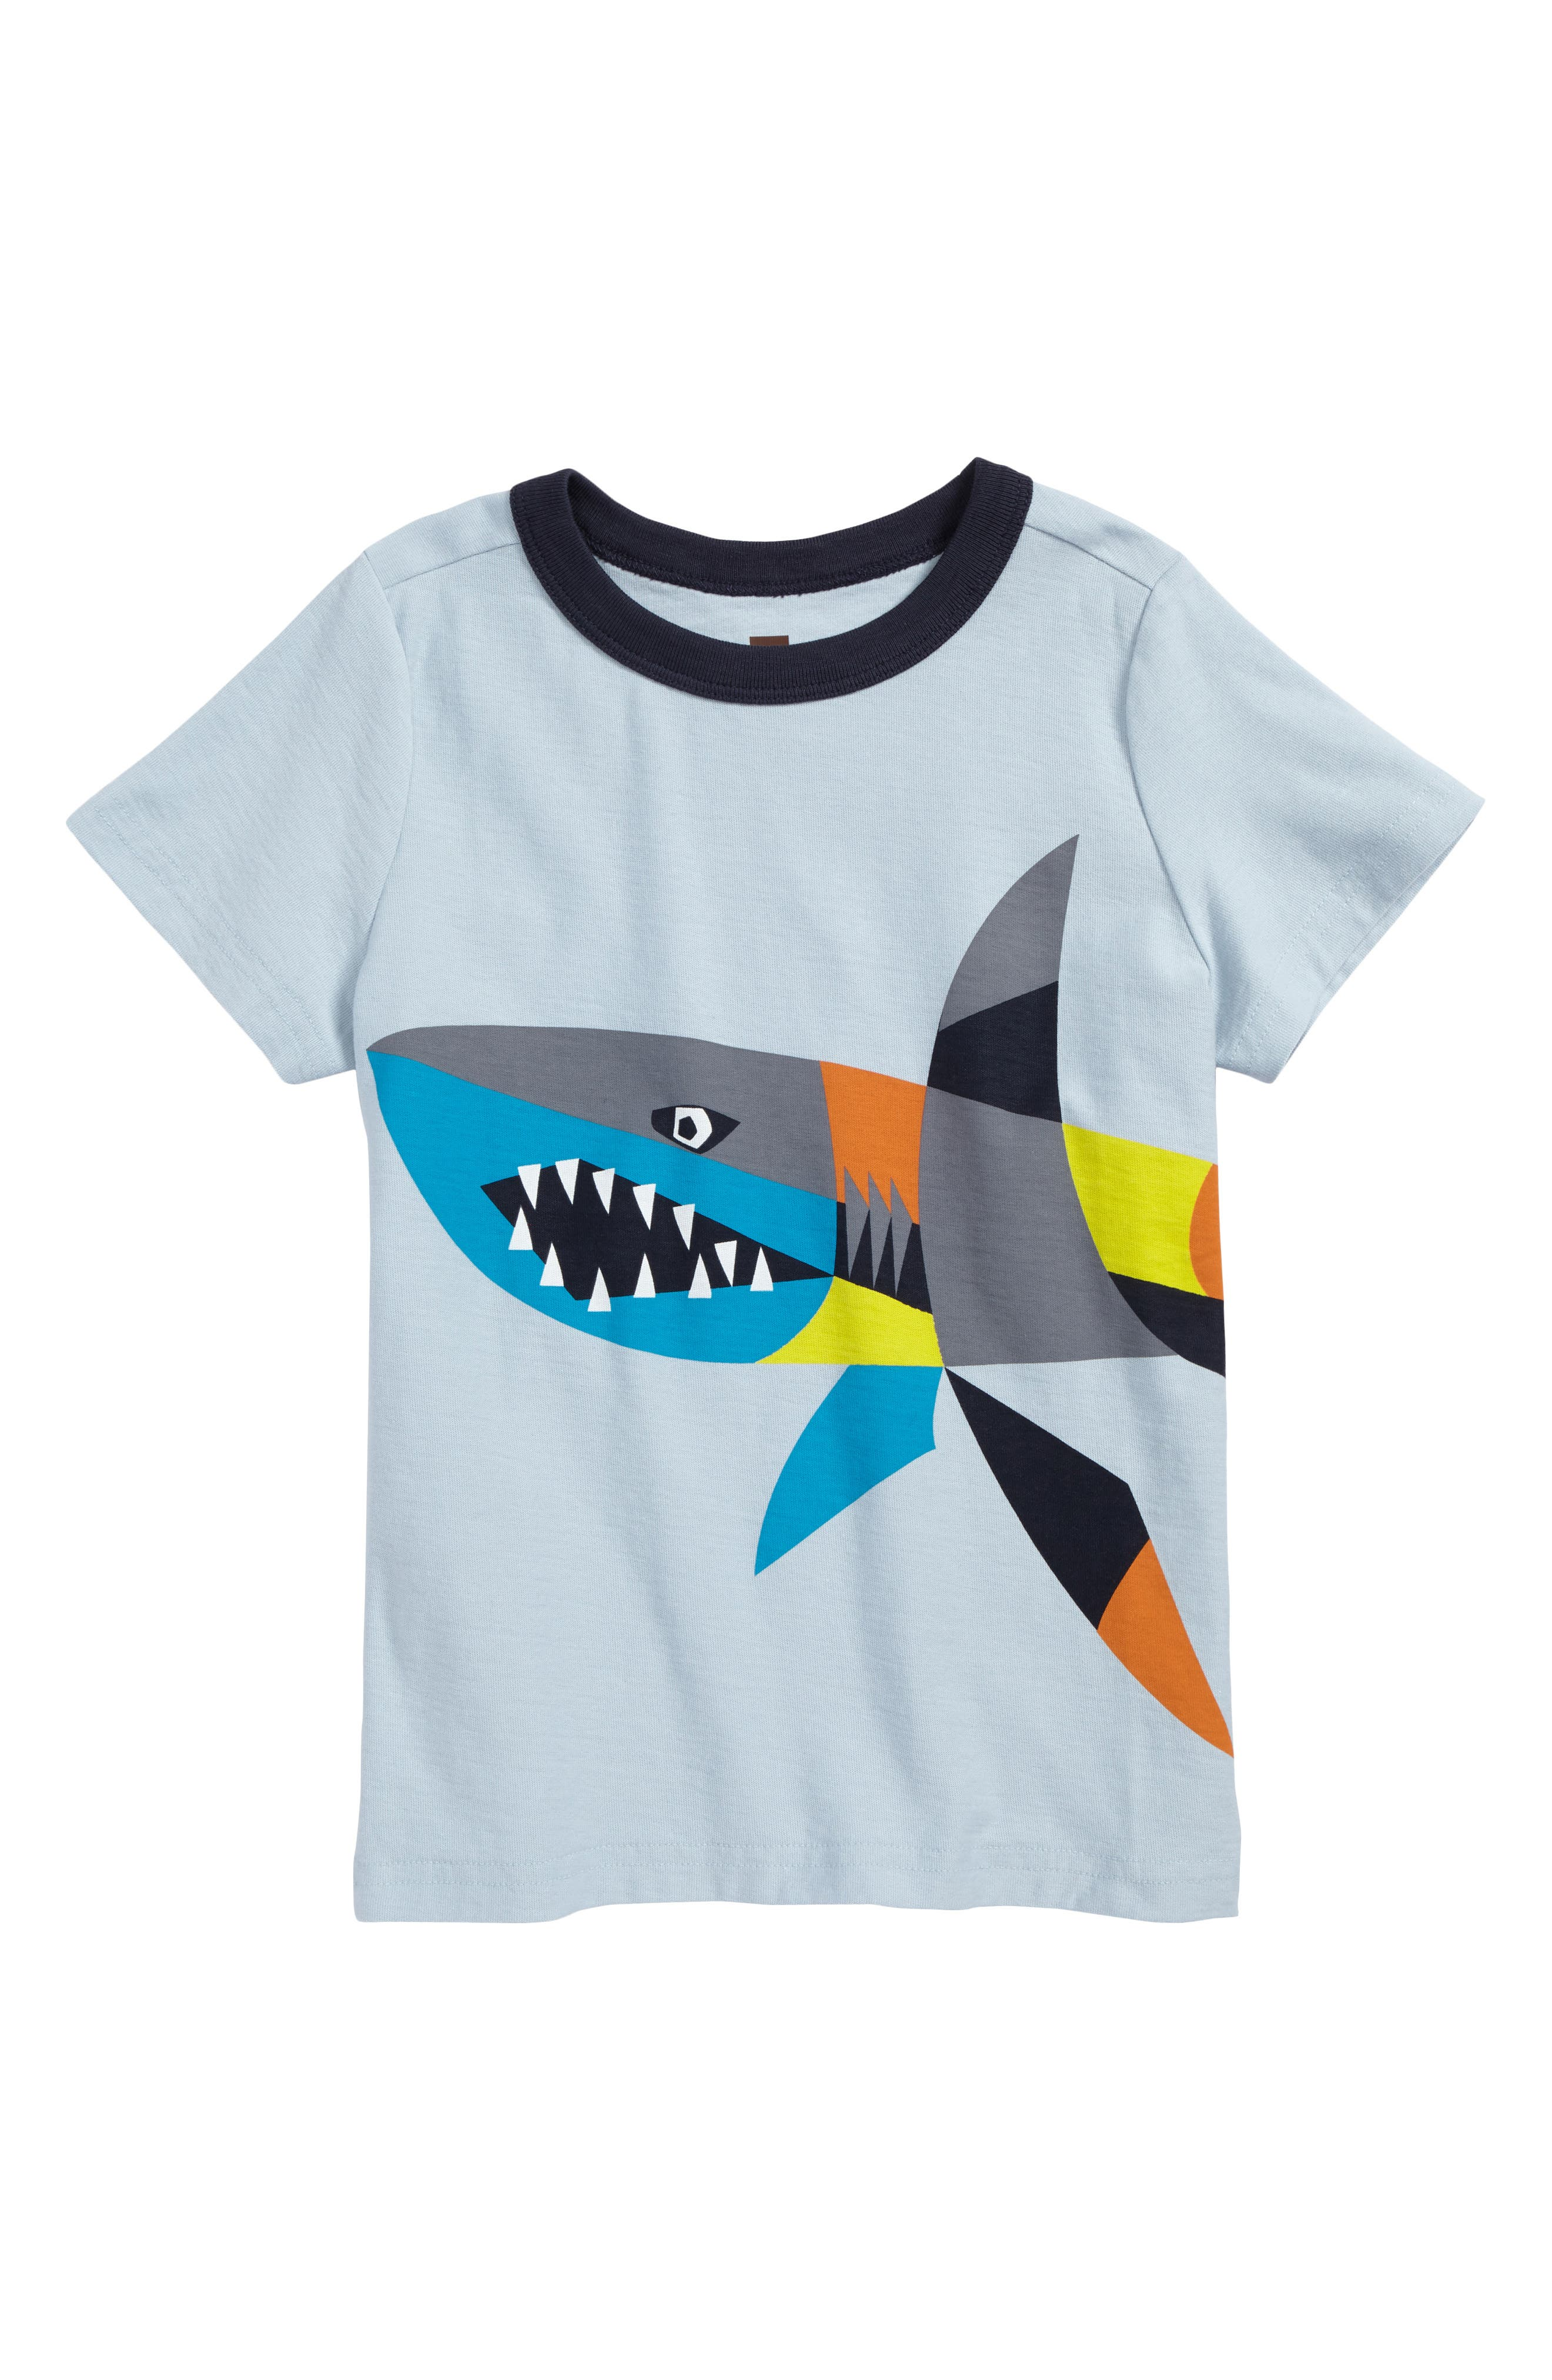 Chomper T-Shirt,                             Main thumbnail 1, color,                             469